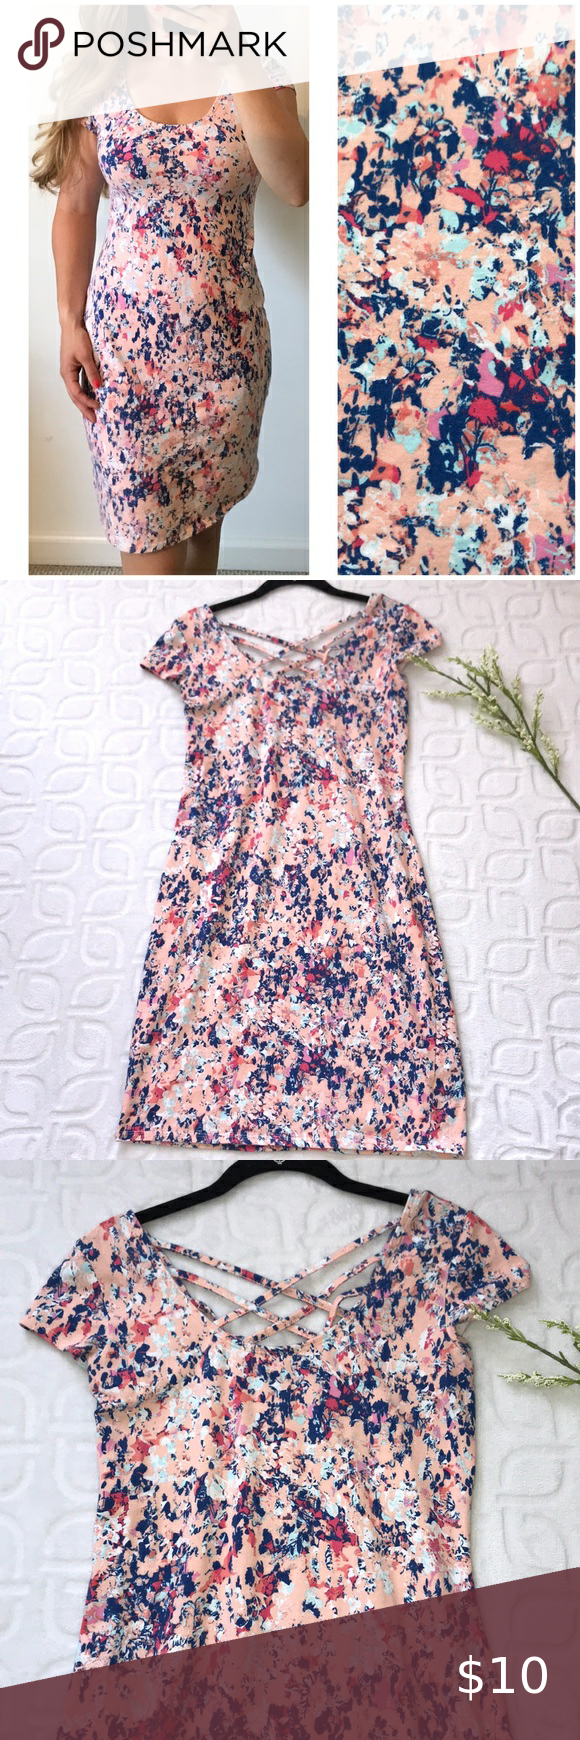 Floral Print Stretchy Strappy Summer Dress Large In 2020 Strappy Summer Dresses Summer Dresses Stretchy Dress [ 1740 x 580 Pixel ]